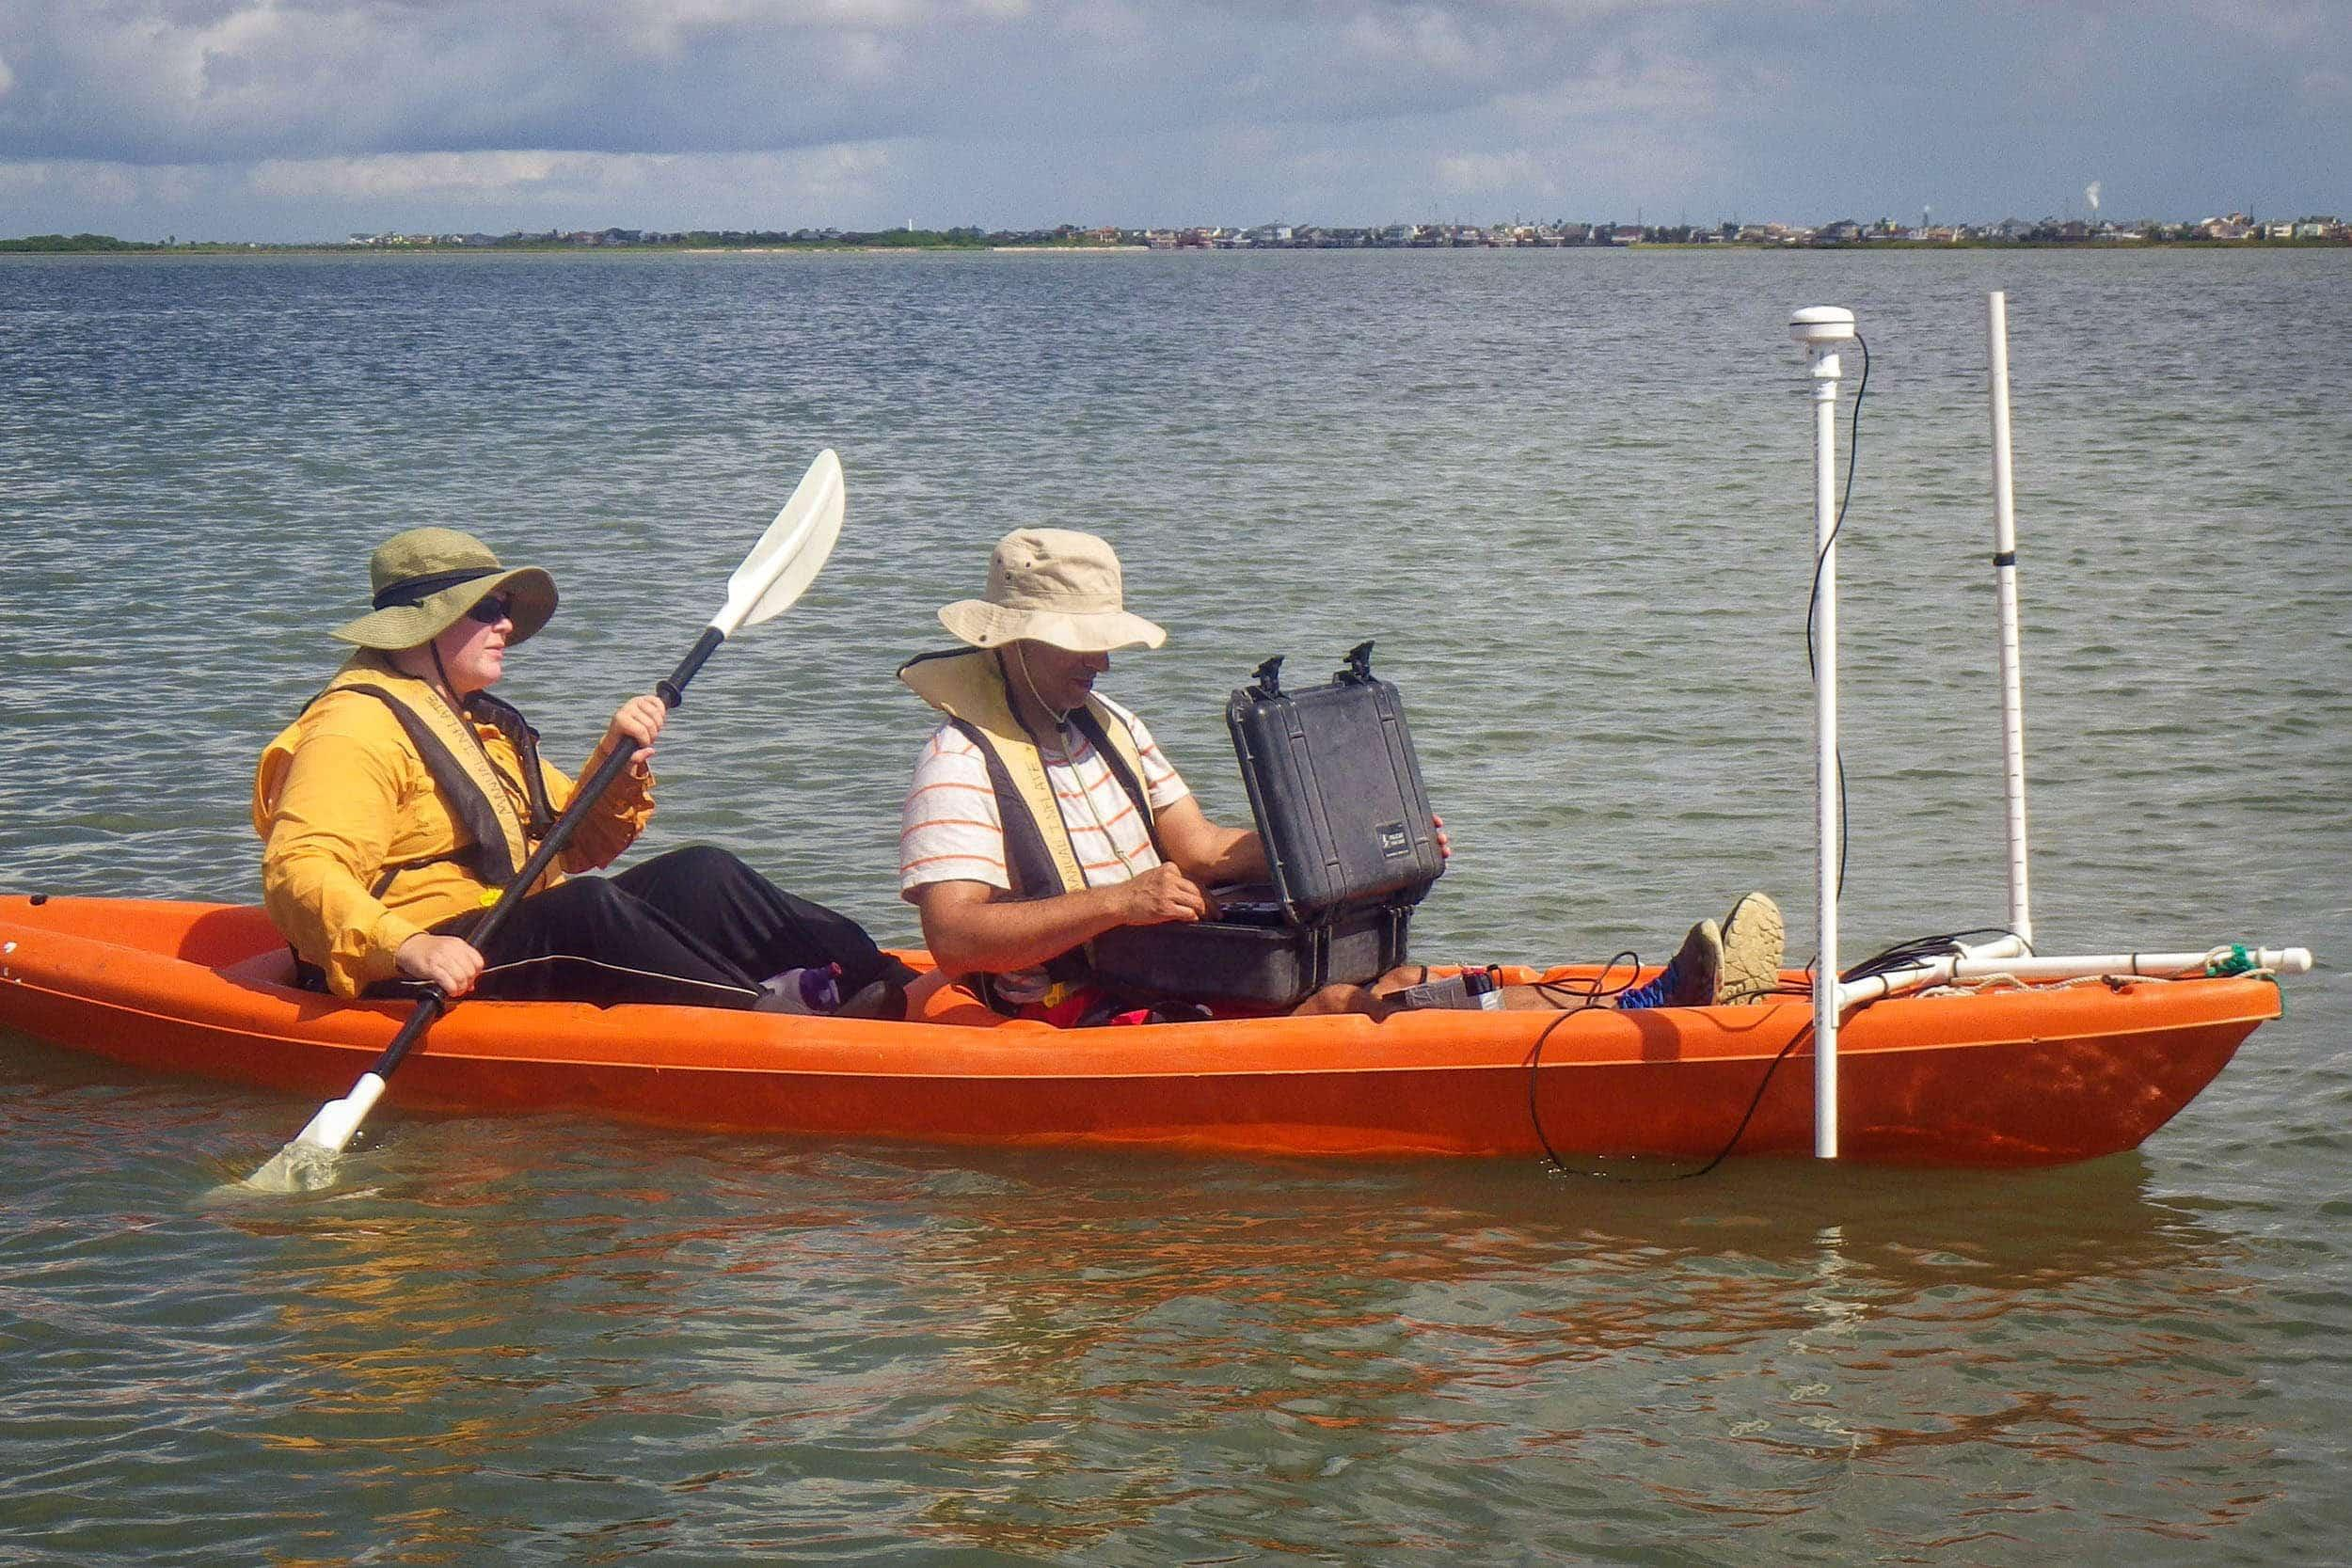 Natasha Zarnstorff, research assistant, and Marc Mokrech, senior research scientist, utilize the sidescan sonar to conduct an oyster reef survey in Galveston Bay.